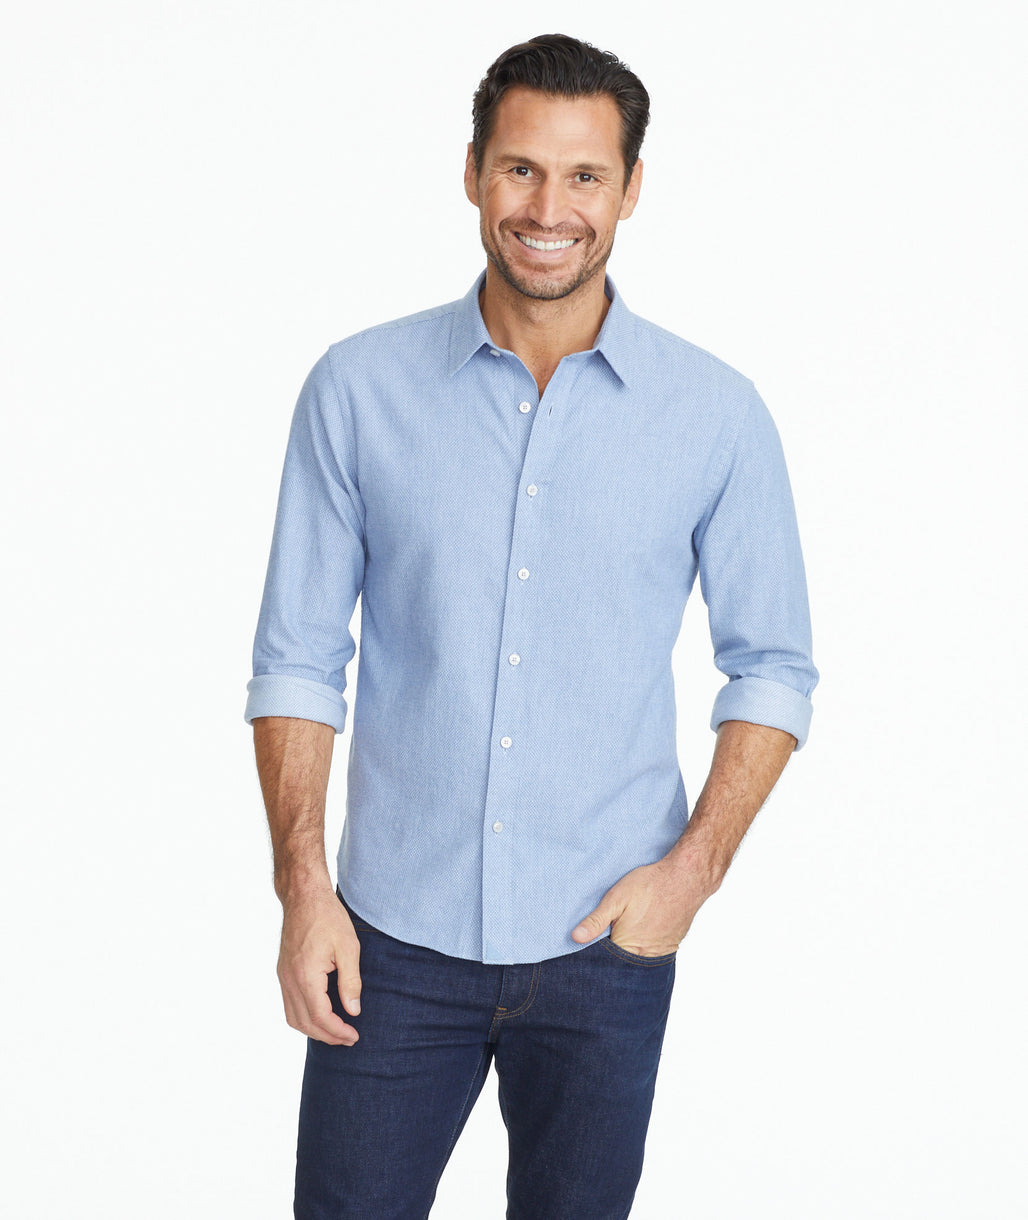 Model wearing a Light Blue Classic Cotton Priam Shirt